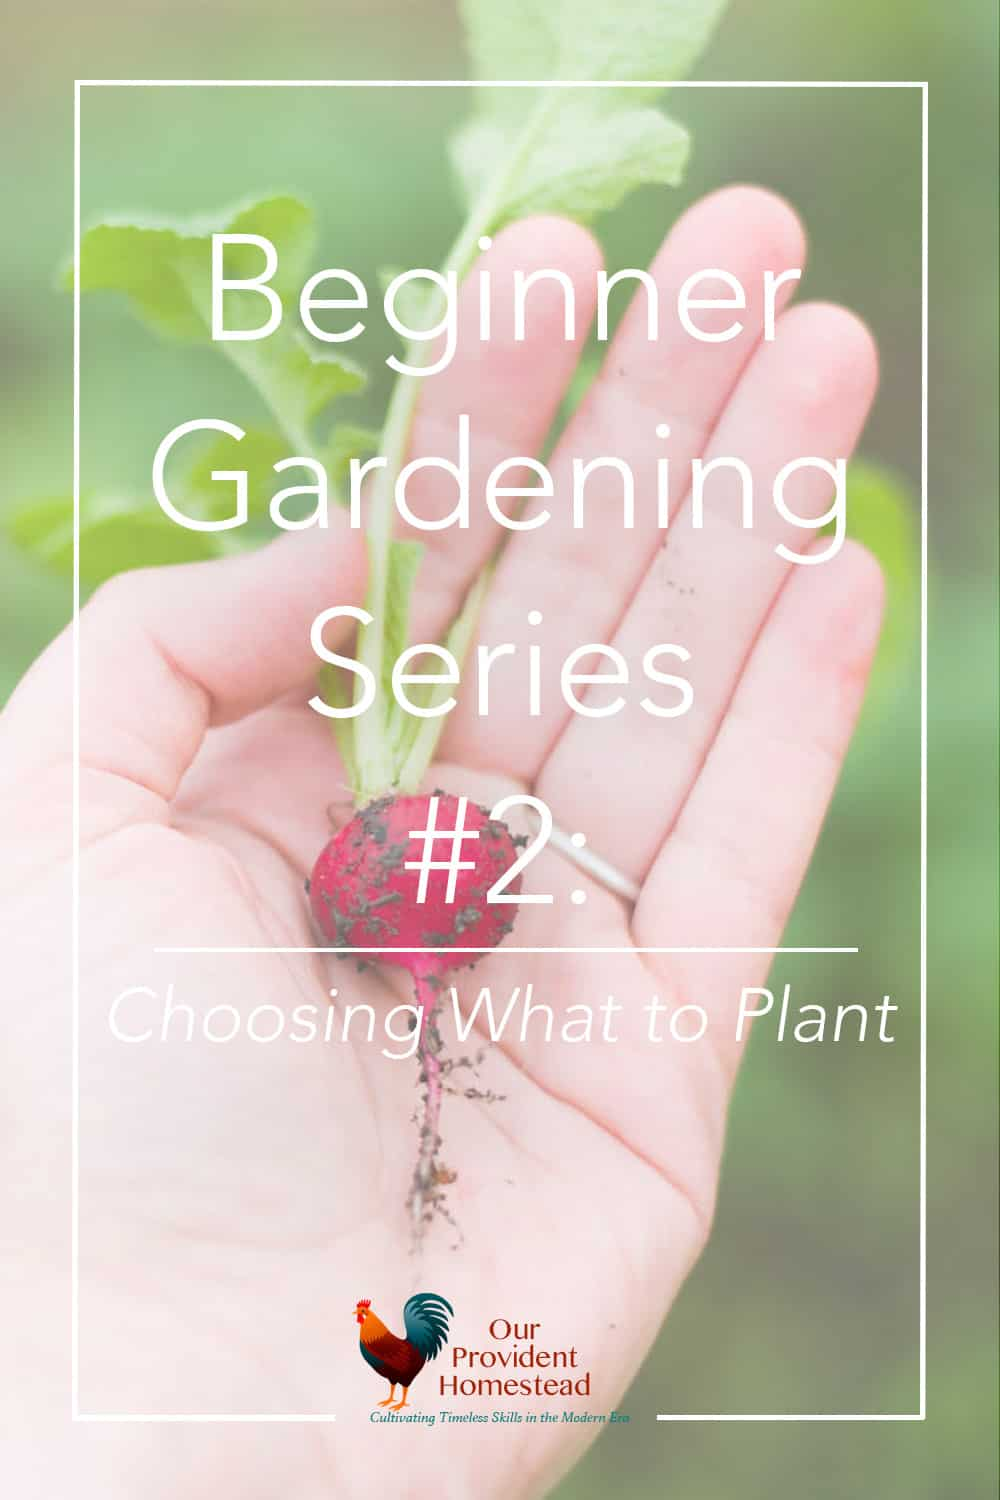 Are you new to gardening? Our beginner gardening series will help answer your questions, including choosing plants for your garden patch. Beginner Gardening | Easy Plants to Grow | Choosing Plants